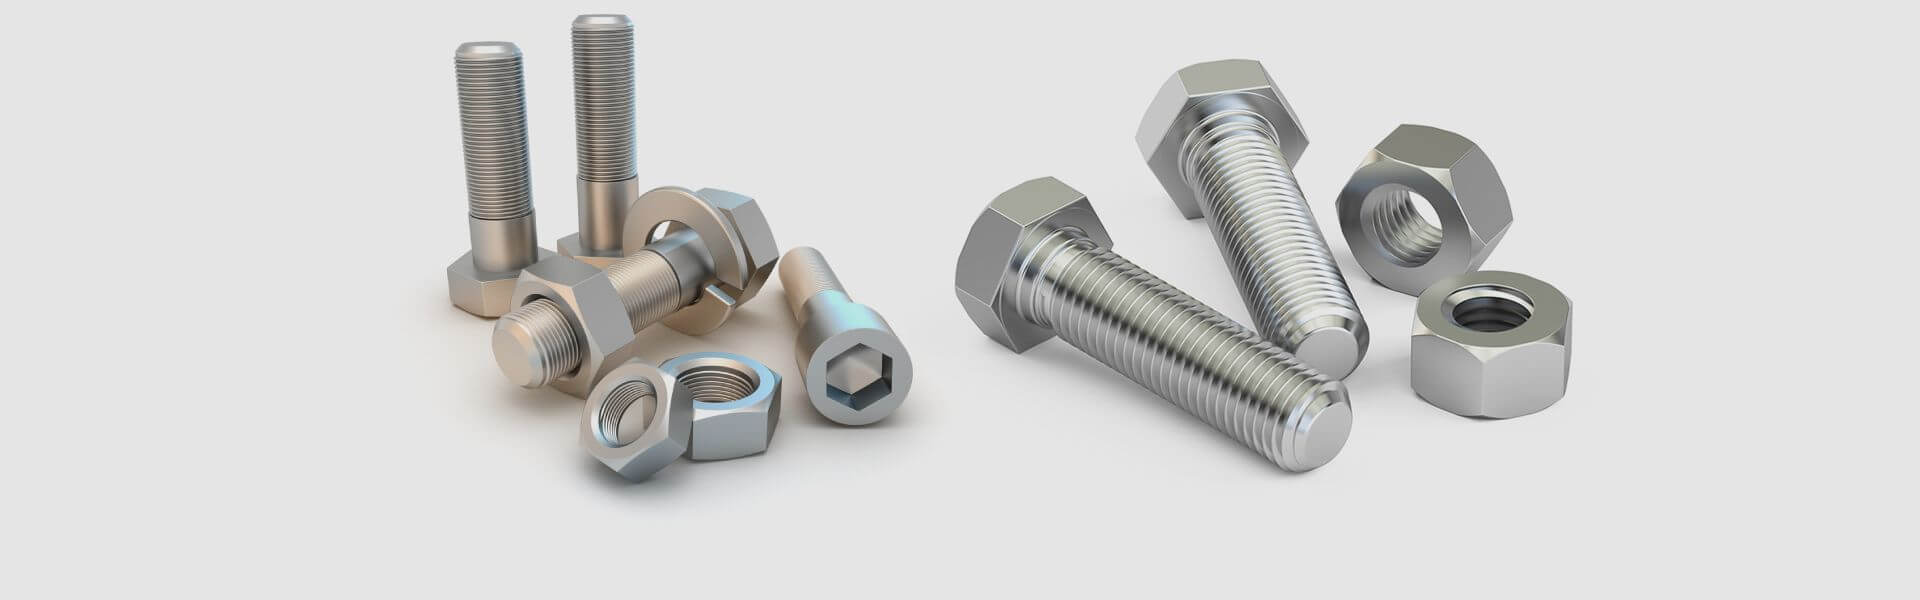 Metal Fasteners Mfr  Co  Ltd  | fasteners manufacturer Saudi Arabia